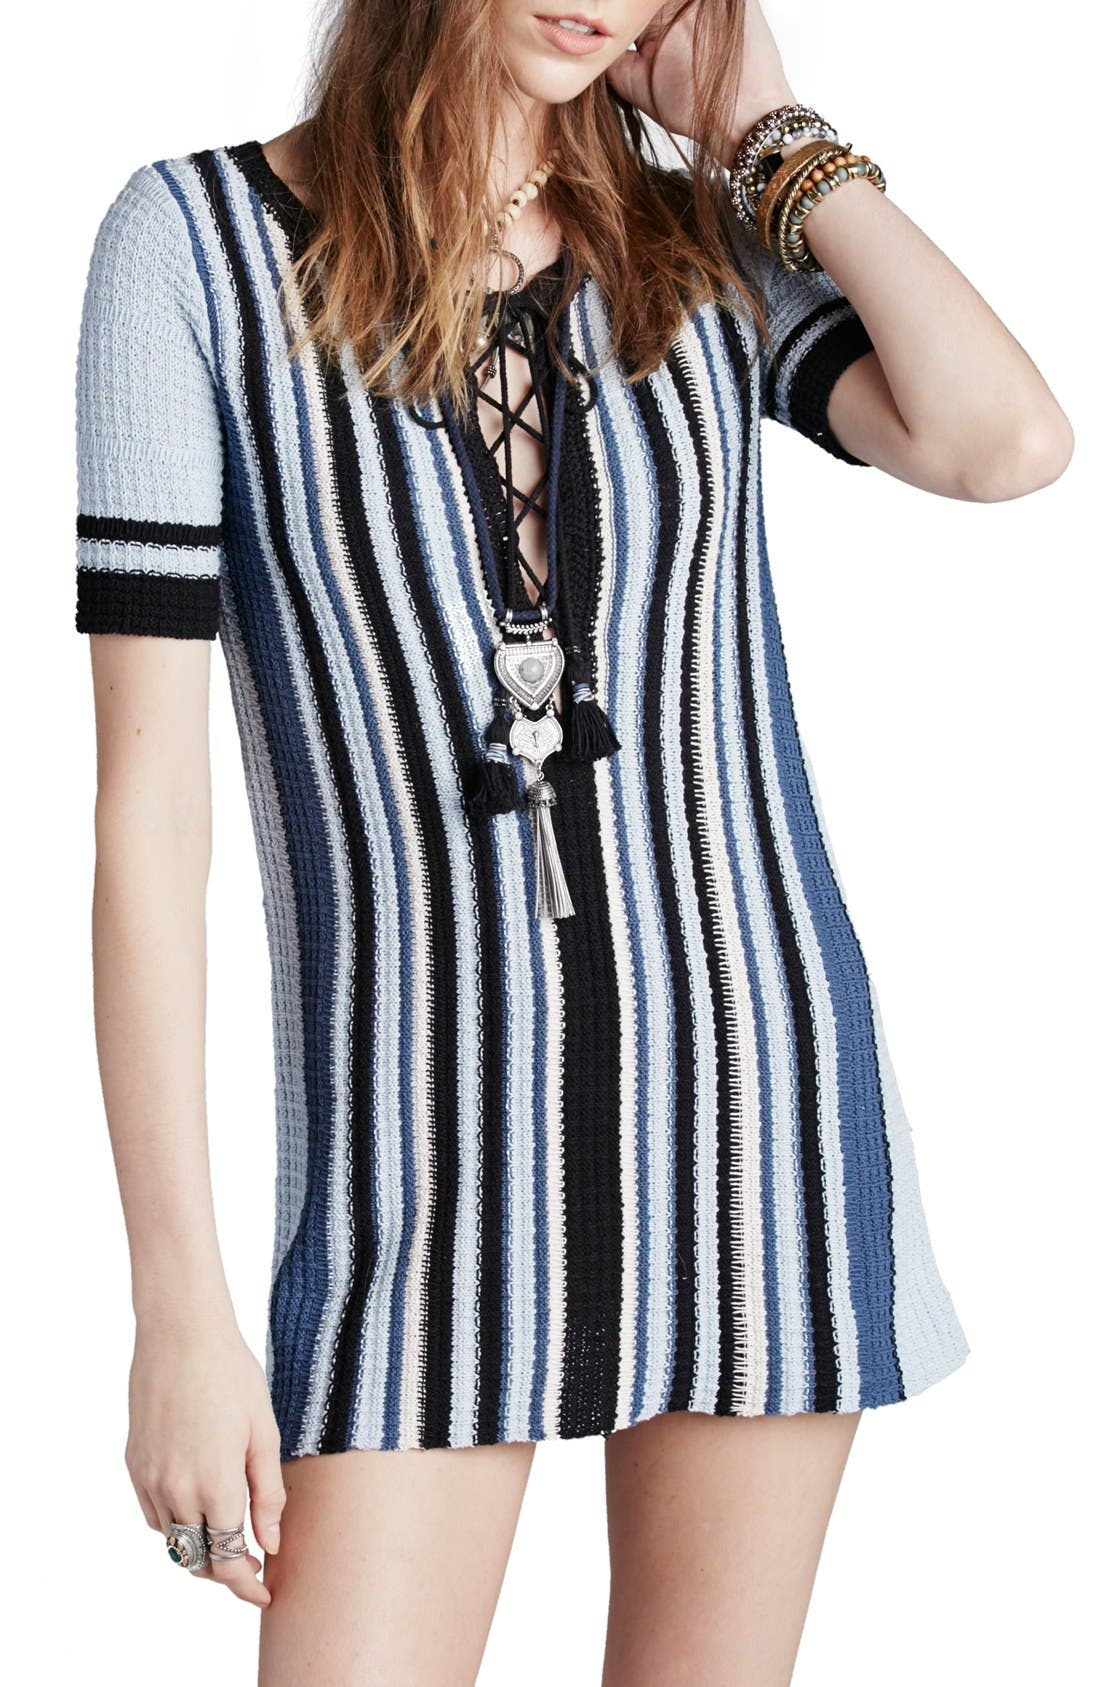 Alternate Image 1 Selected - Free People 'Lollipop' Cotton Sweater Dress